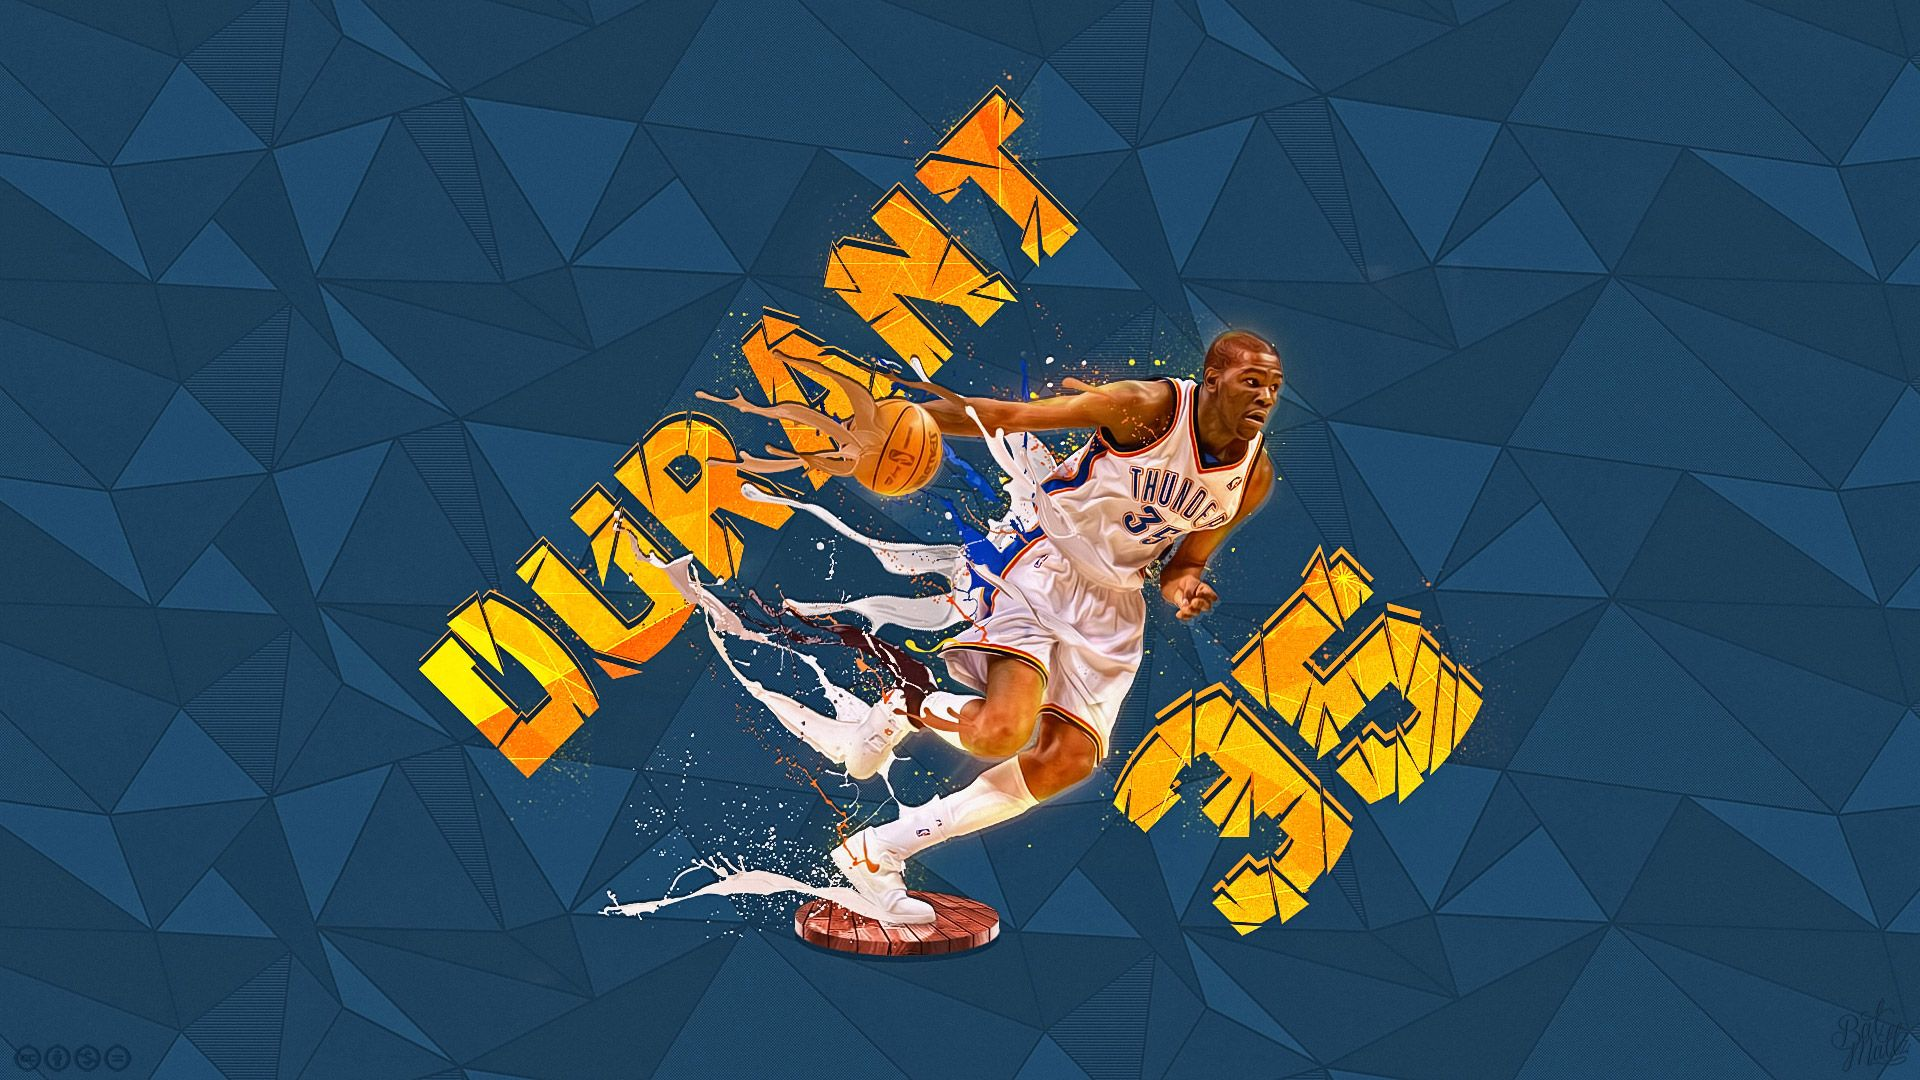 Kevin Durant 1080p Wallpaper http//wallpapersand